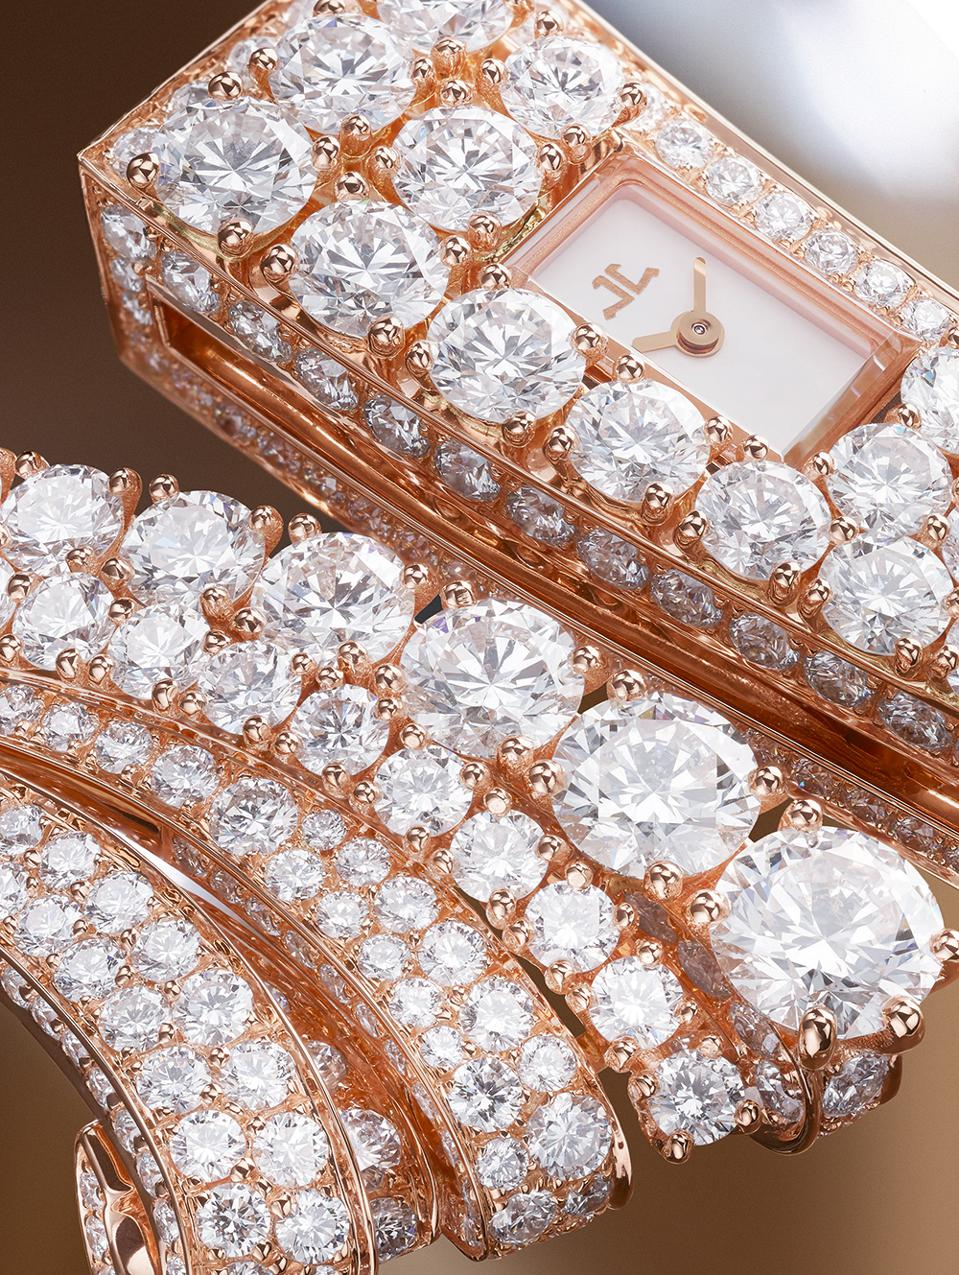 The Jaeger-LeCoultre Bangle watch, with 19.7 carats of diamonds.